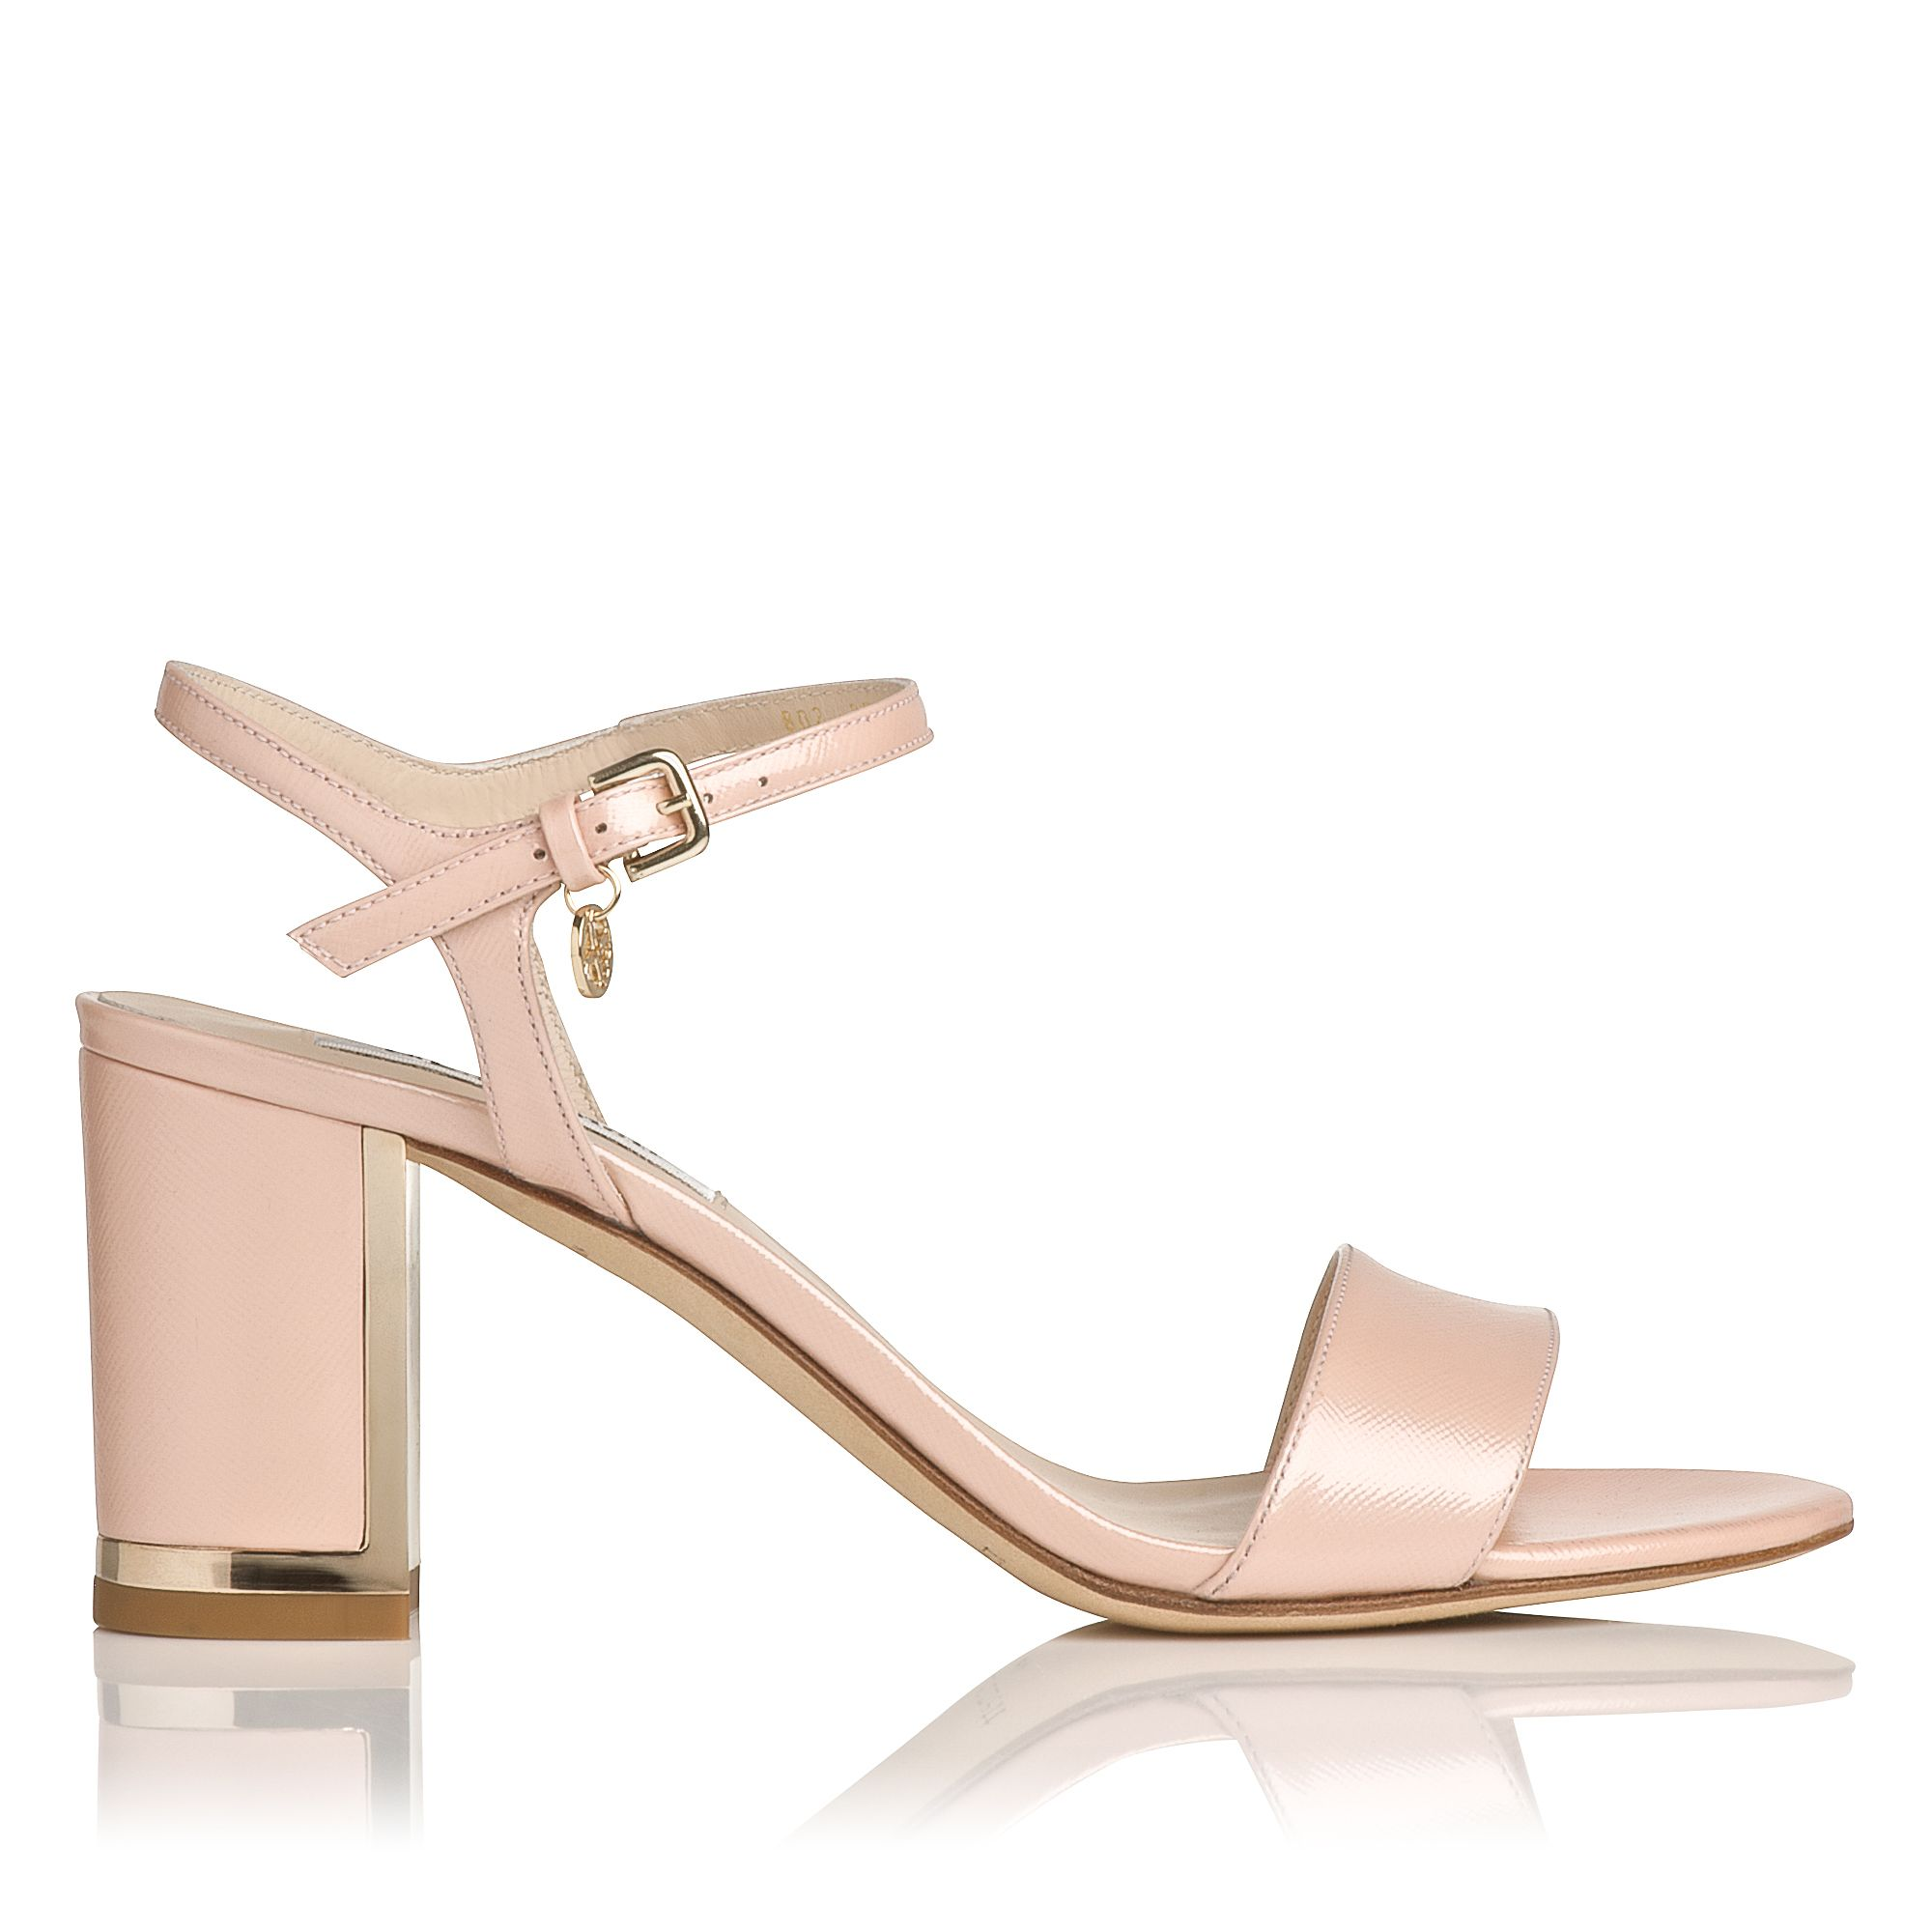 Morgan sandal with blocked heel